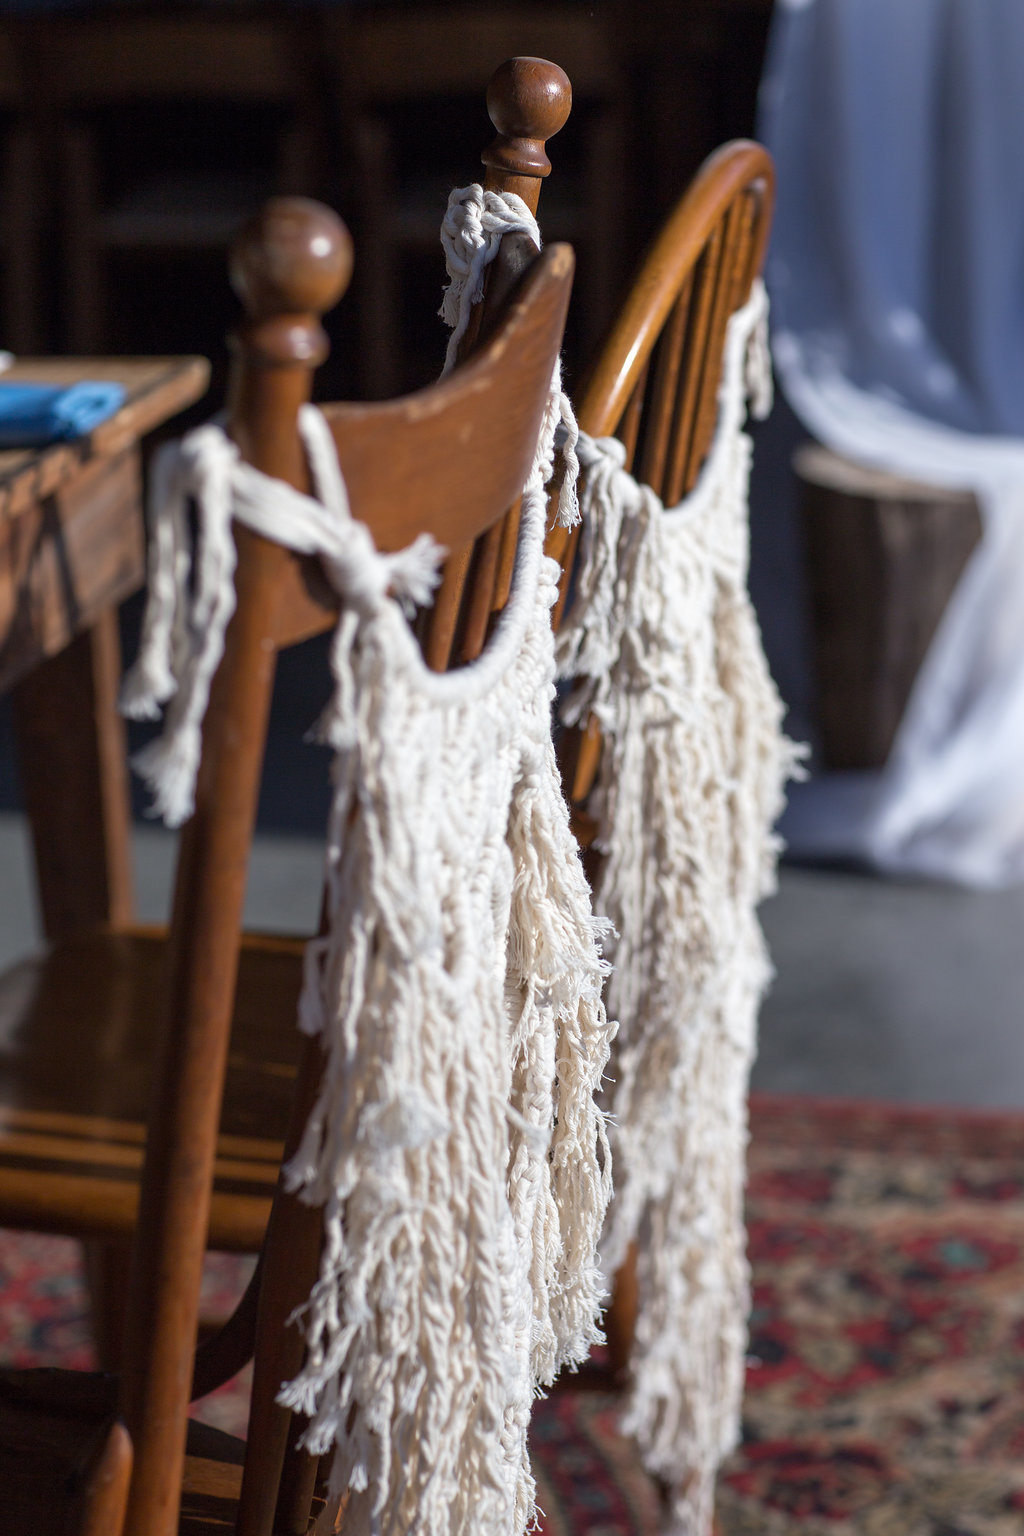 Monica_Relyea_Events_Dawn_Honsky_Photography_bride_and_groom_Nostrano_vineyard_ceremony_boho_naughy_knots_macrame_Meg_and_TJ